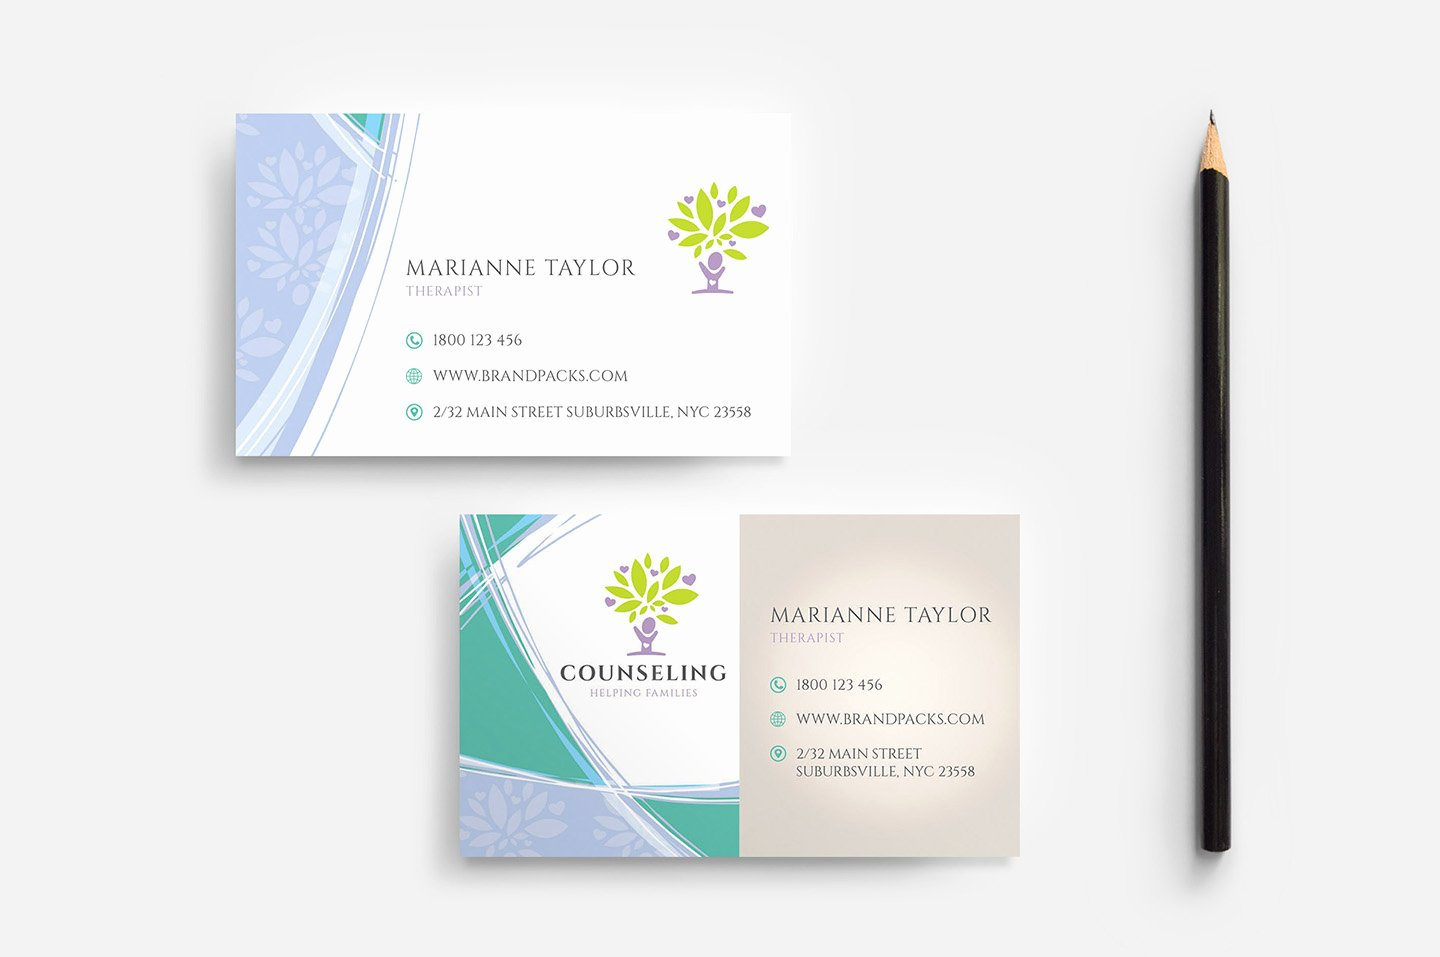 Business Card Template Ai Lovely Counselling Service Business Card Template In Psd Ai